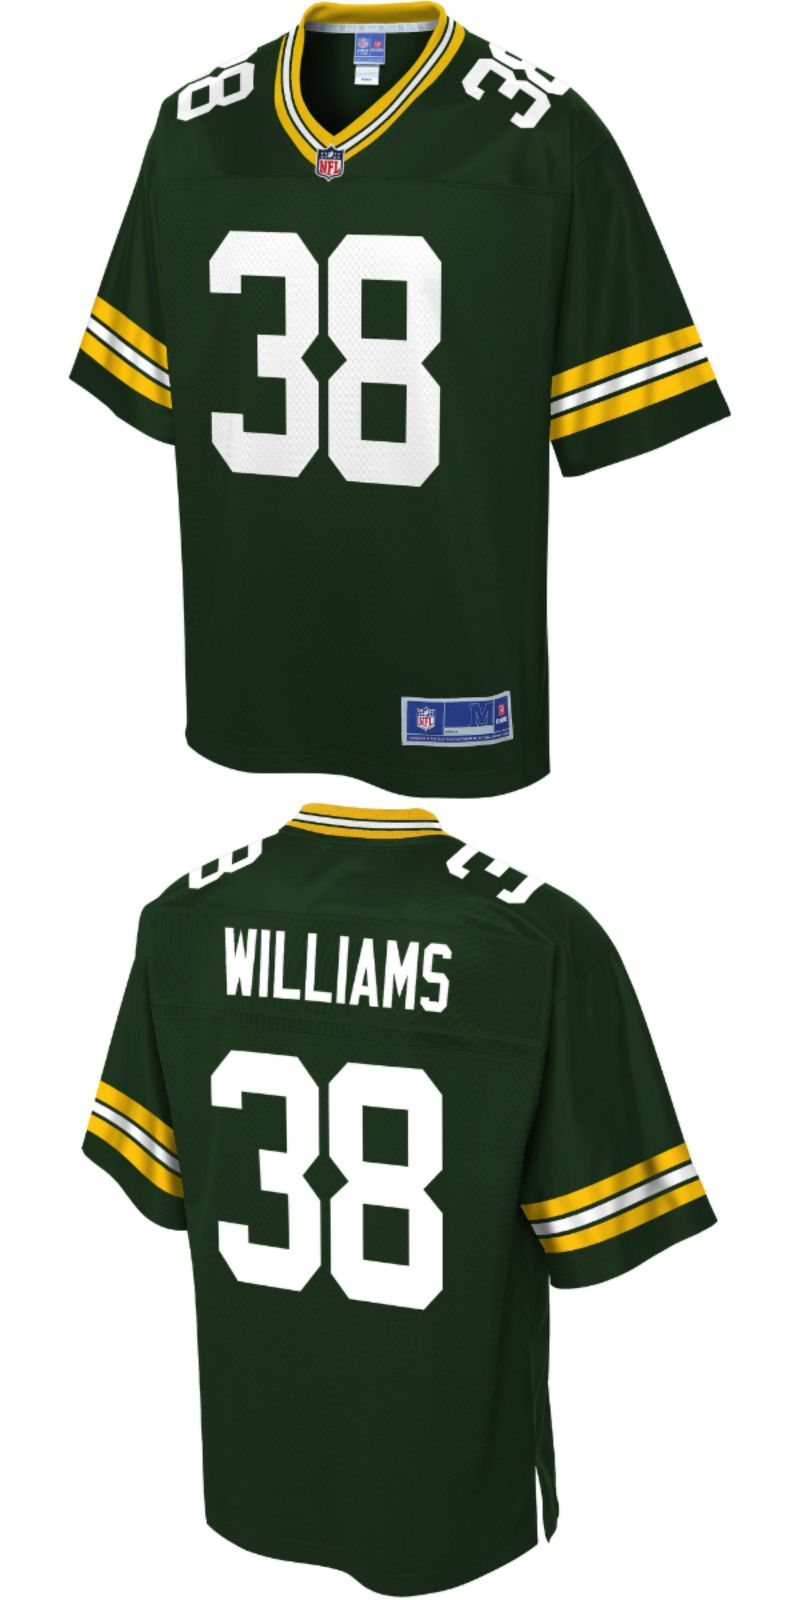 innovative design 1be30 09062 UP TO 70% OFF. Tramon Williams Green Bay Packers NFL Pro ...